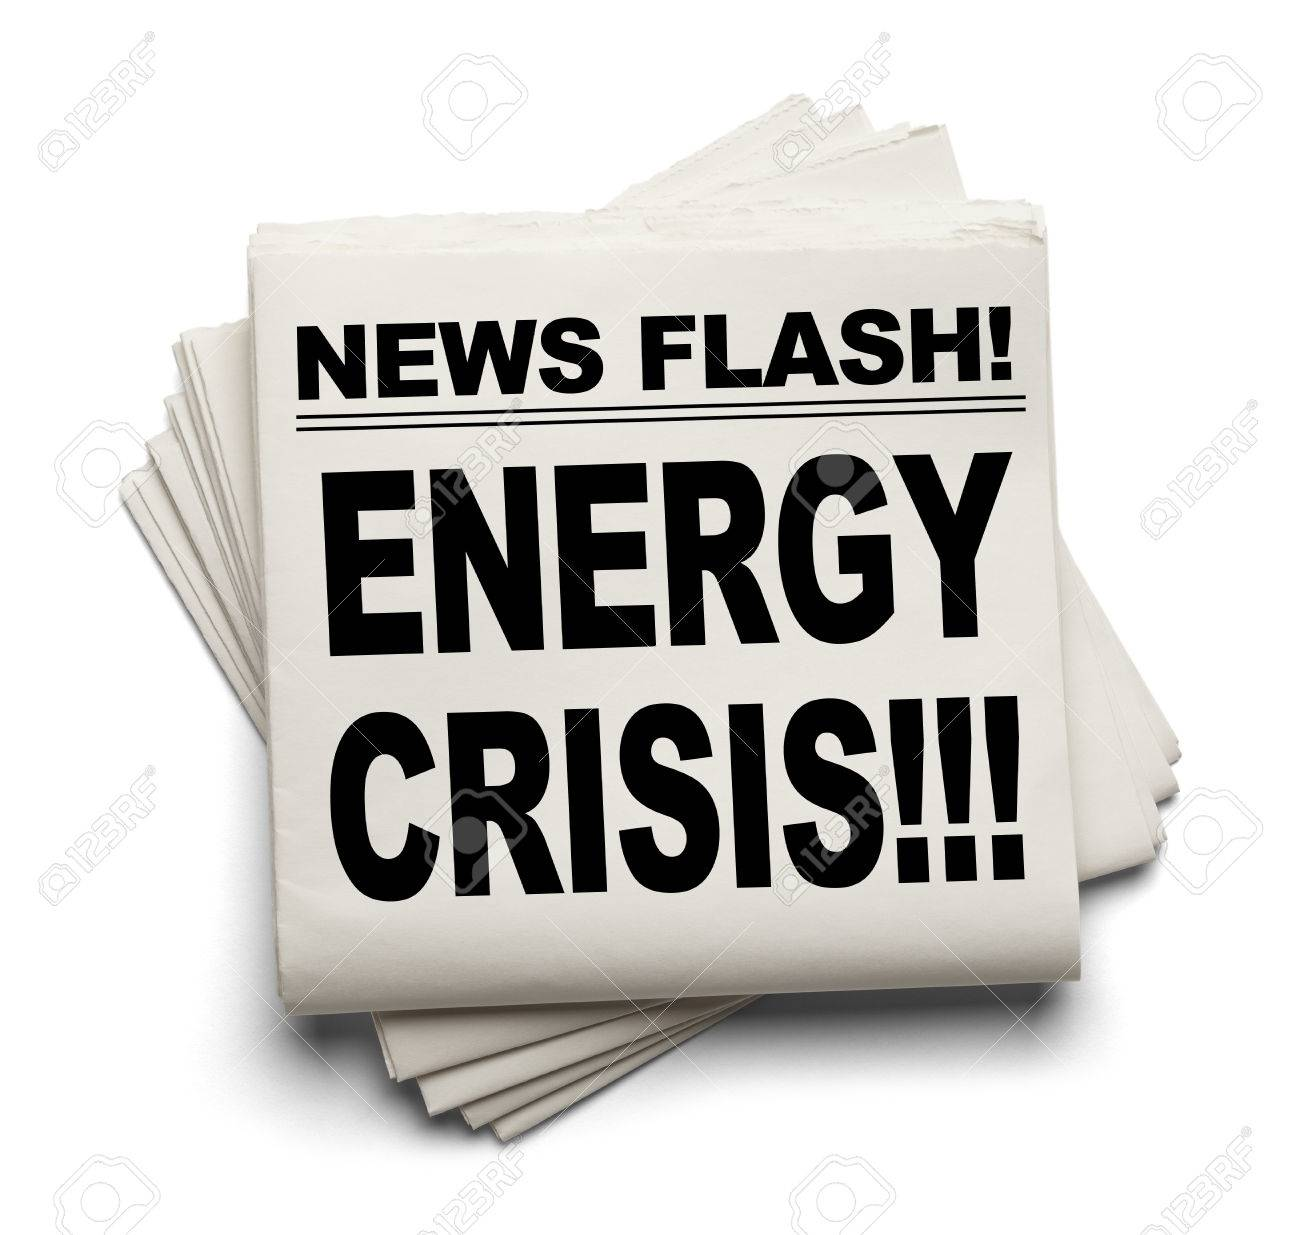 News Flash Energy Crisis News Paper Isolated on White Background